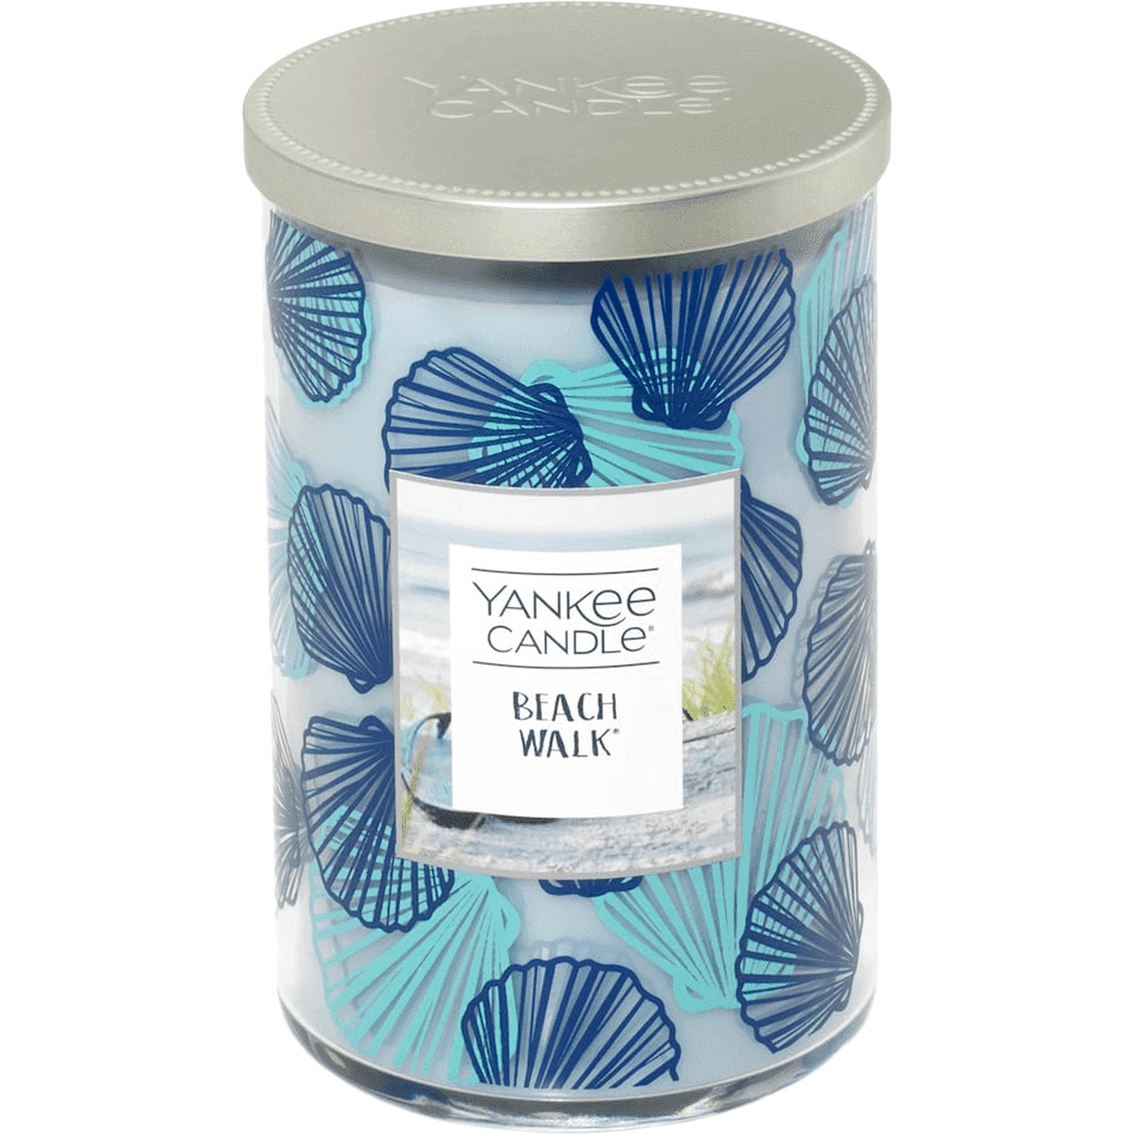 Yankee Candle Seashell Beach Walk Scent 2 Wick Tumbler Candle, Large